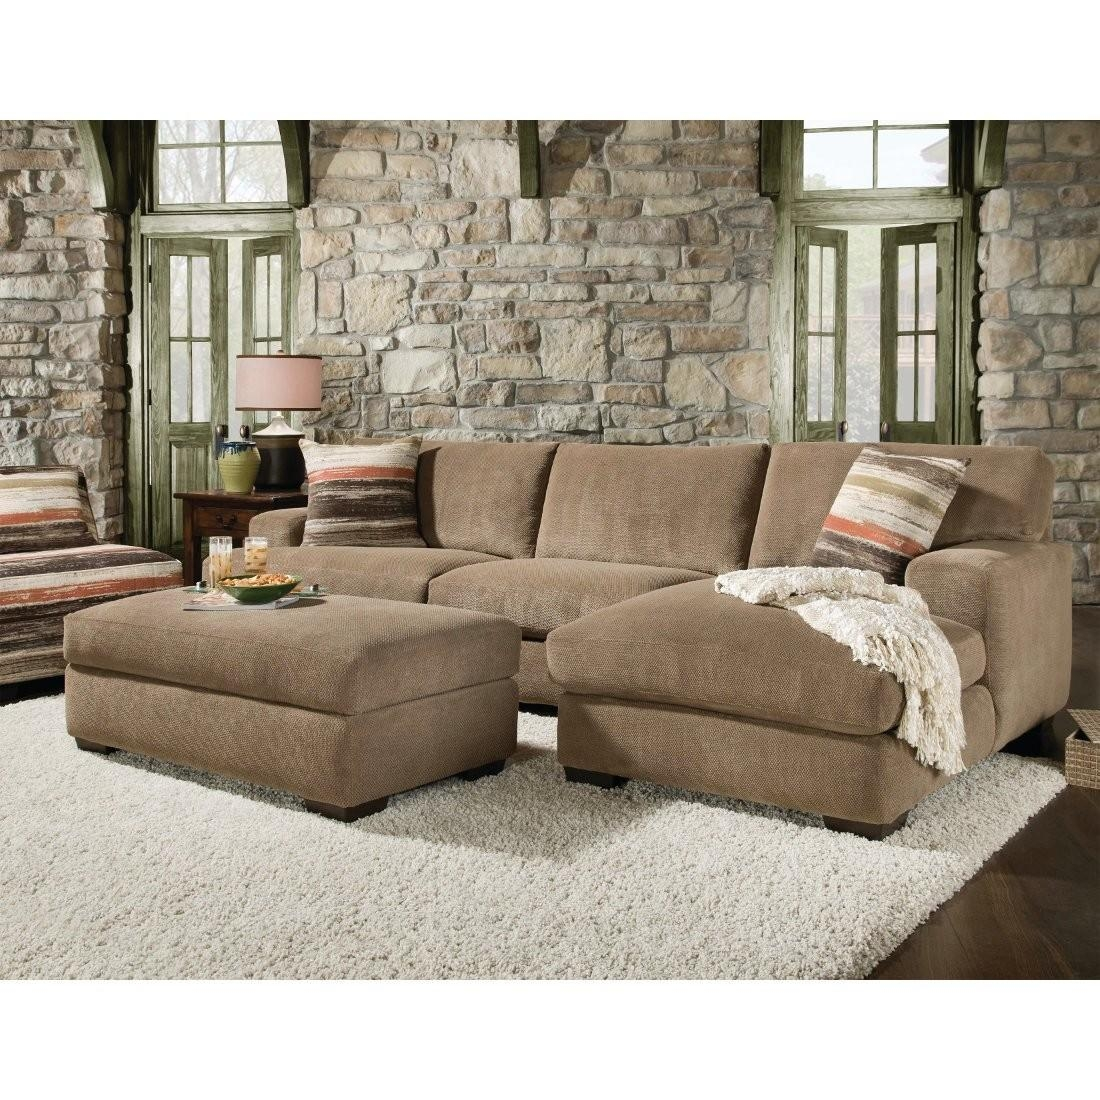 2 Piece Sectional Sofa With Chaise Design | Homesfeed In Small 2 Piece Sectional Sofas (Image 1 of 23)